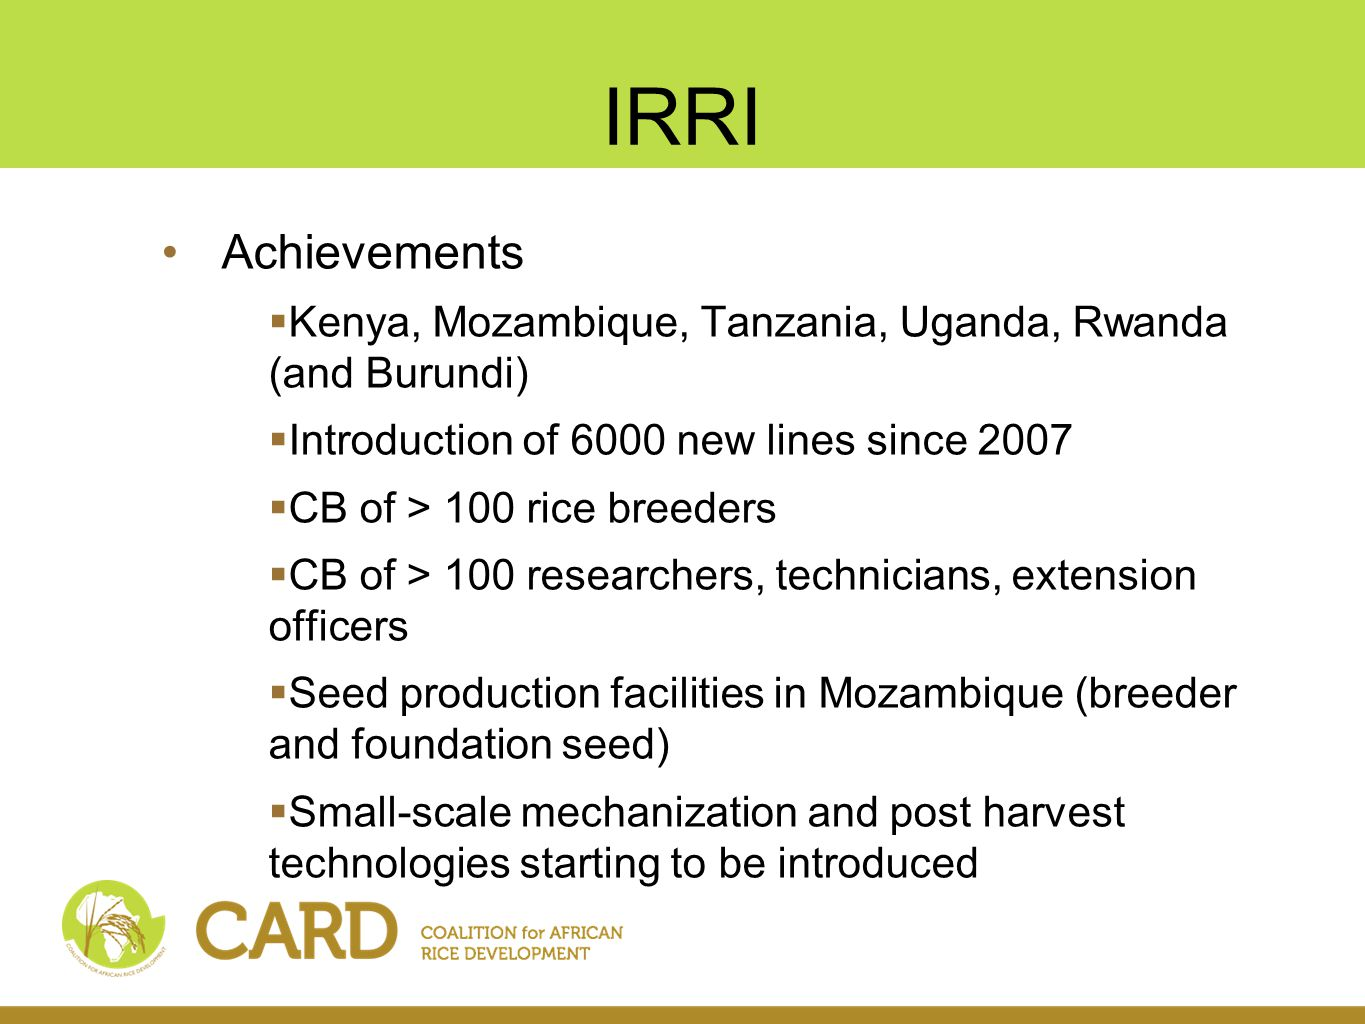 IRRI Achievements  Kenya, Mozambique, Tanzania, Uganda, Rwanda (and Burundi)  Introduction of 6000 new lines since 2007  CB of > 100 rice breeders  CB of > 100 researchers, technicians, extension officers  Seed production facilities in Mozambique (breeder and foundation seed)  Small-scale mechanization and post harvest technologies starting to be introduced